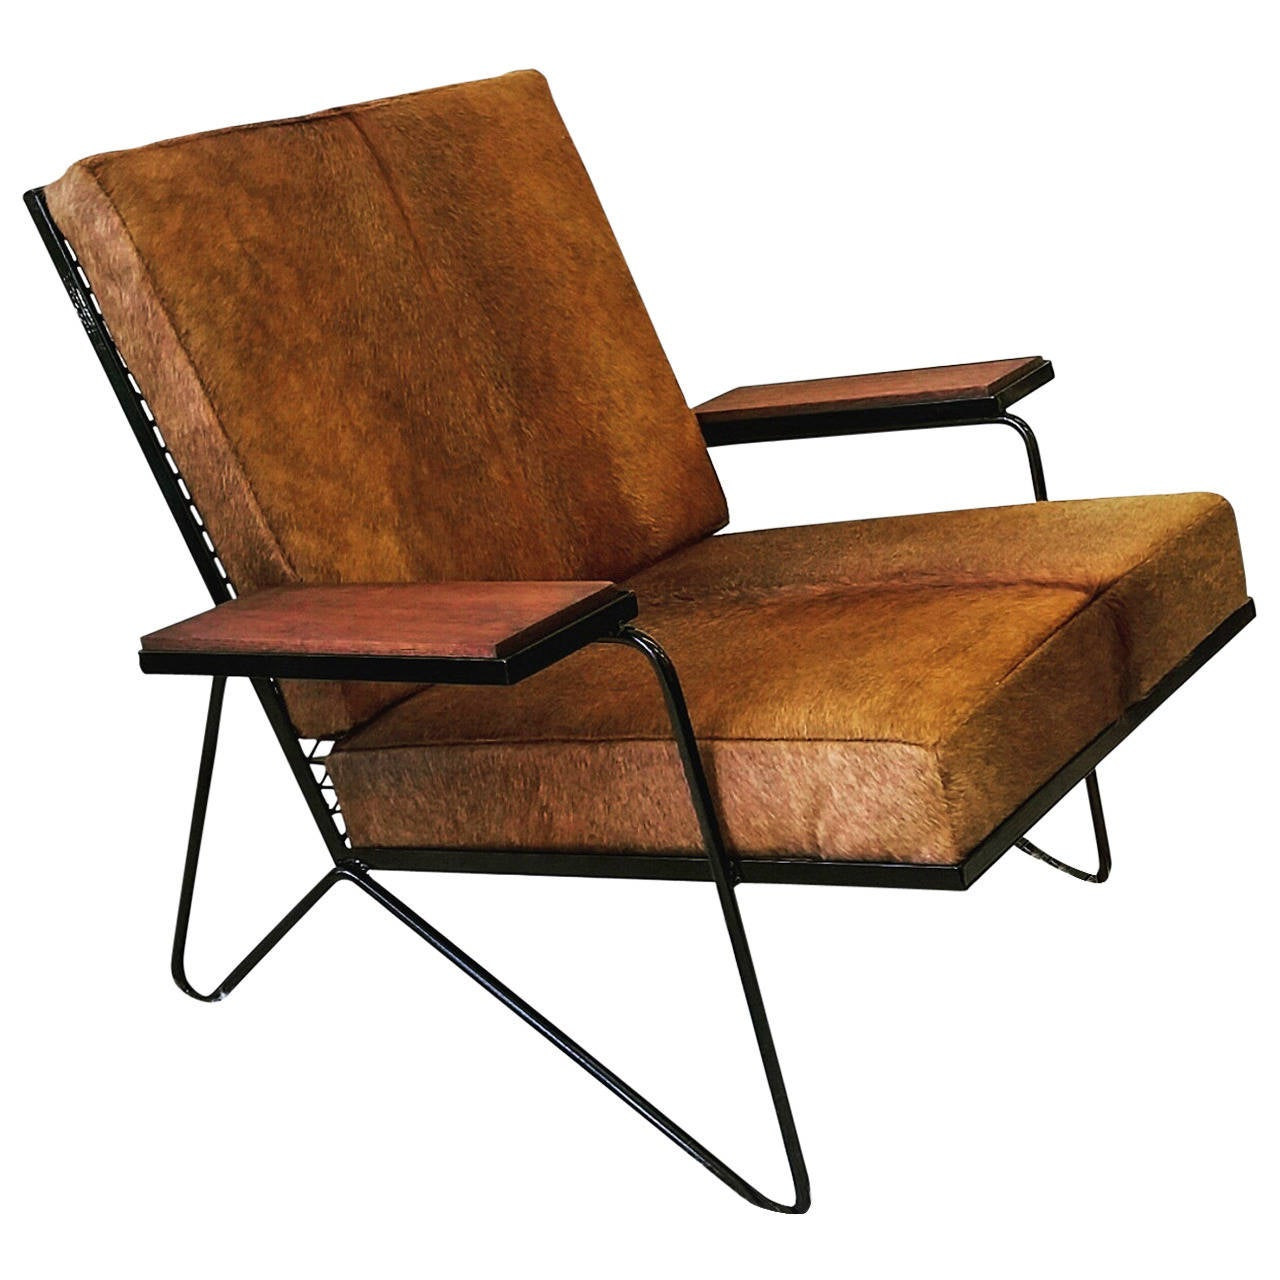 Sculptural iron and cowhide lounge chair after raoul guys at 1stdibs